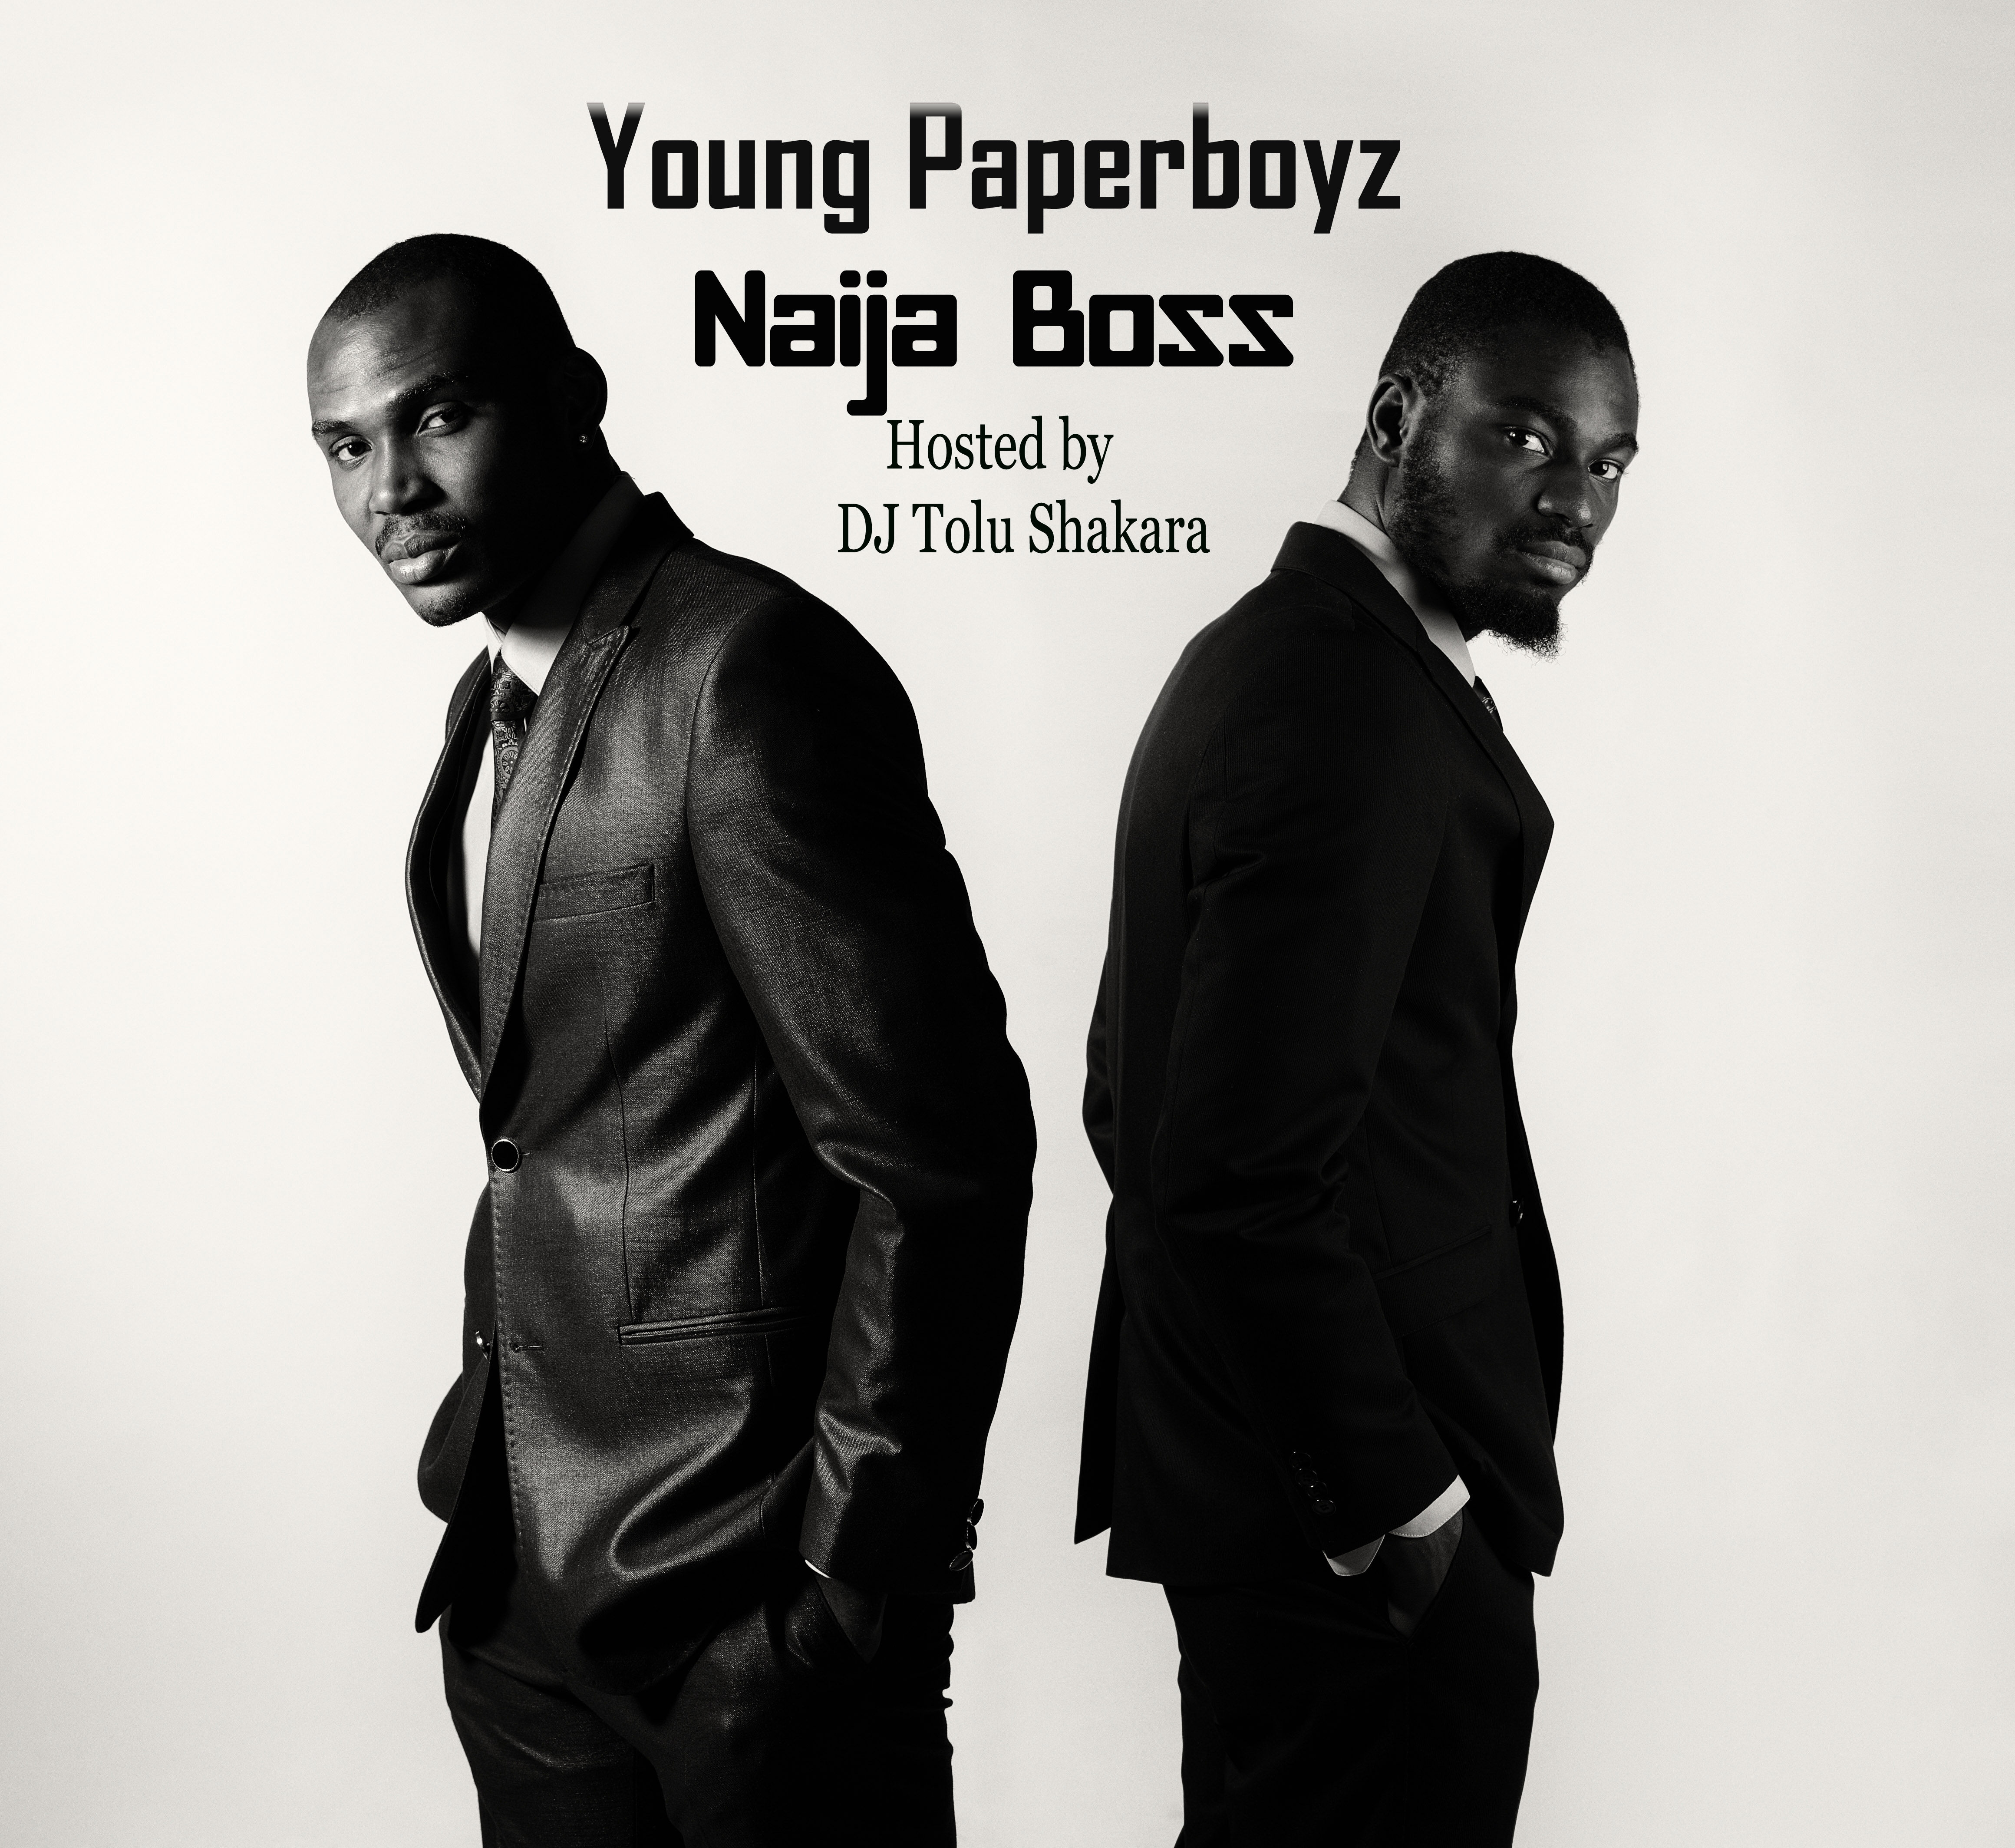 Young-Paperboyz